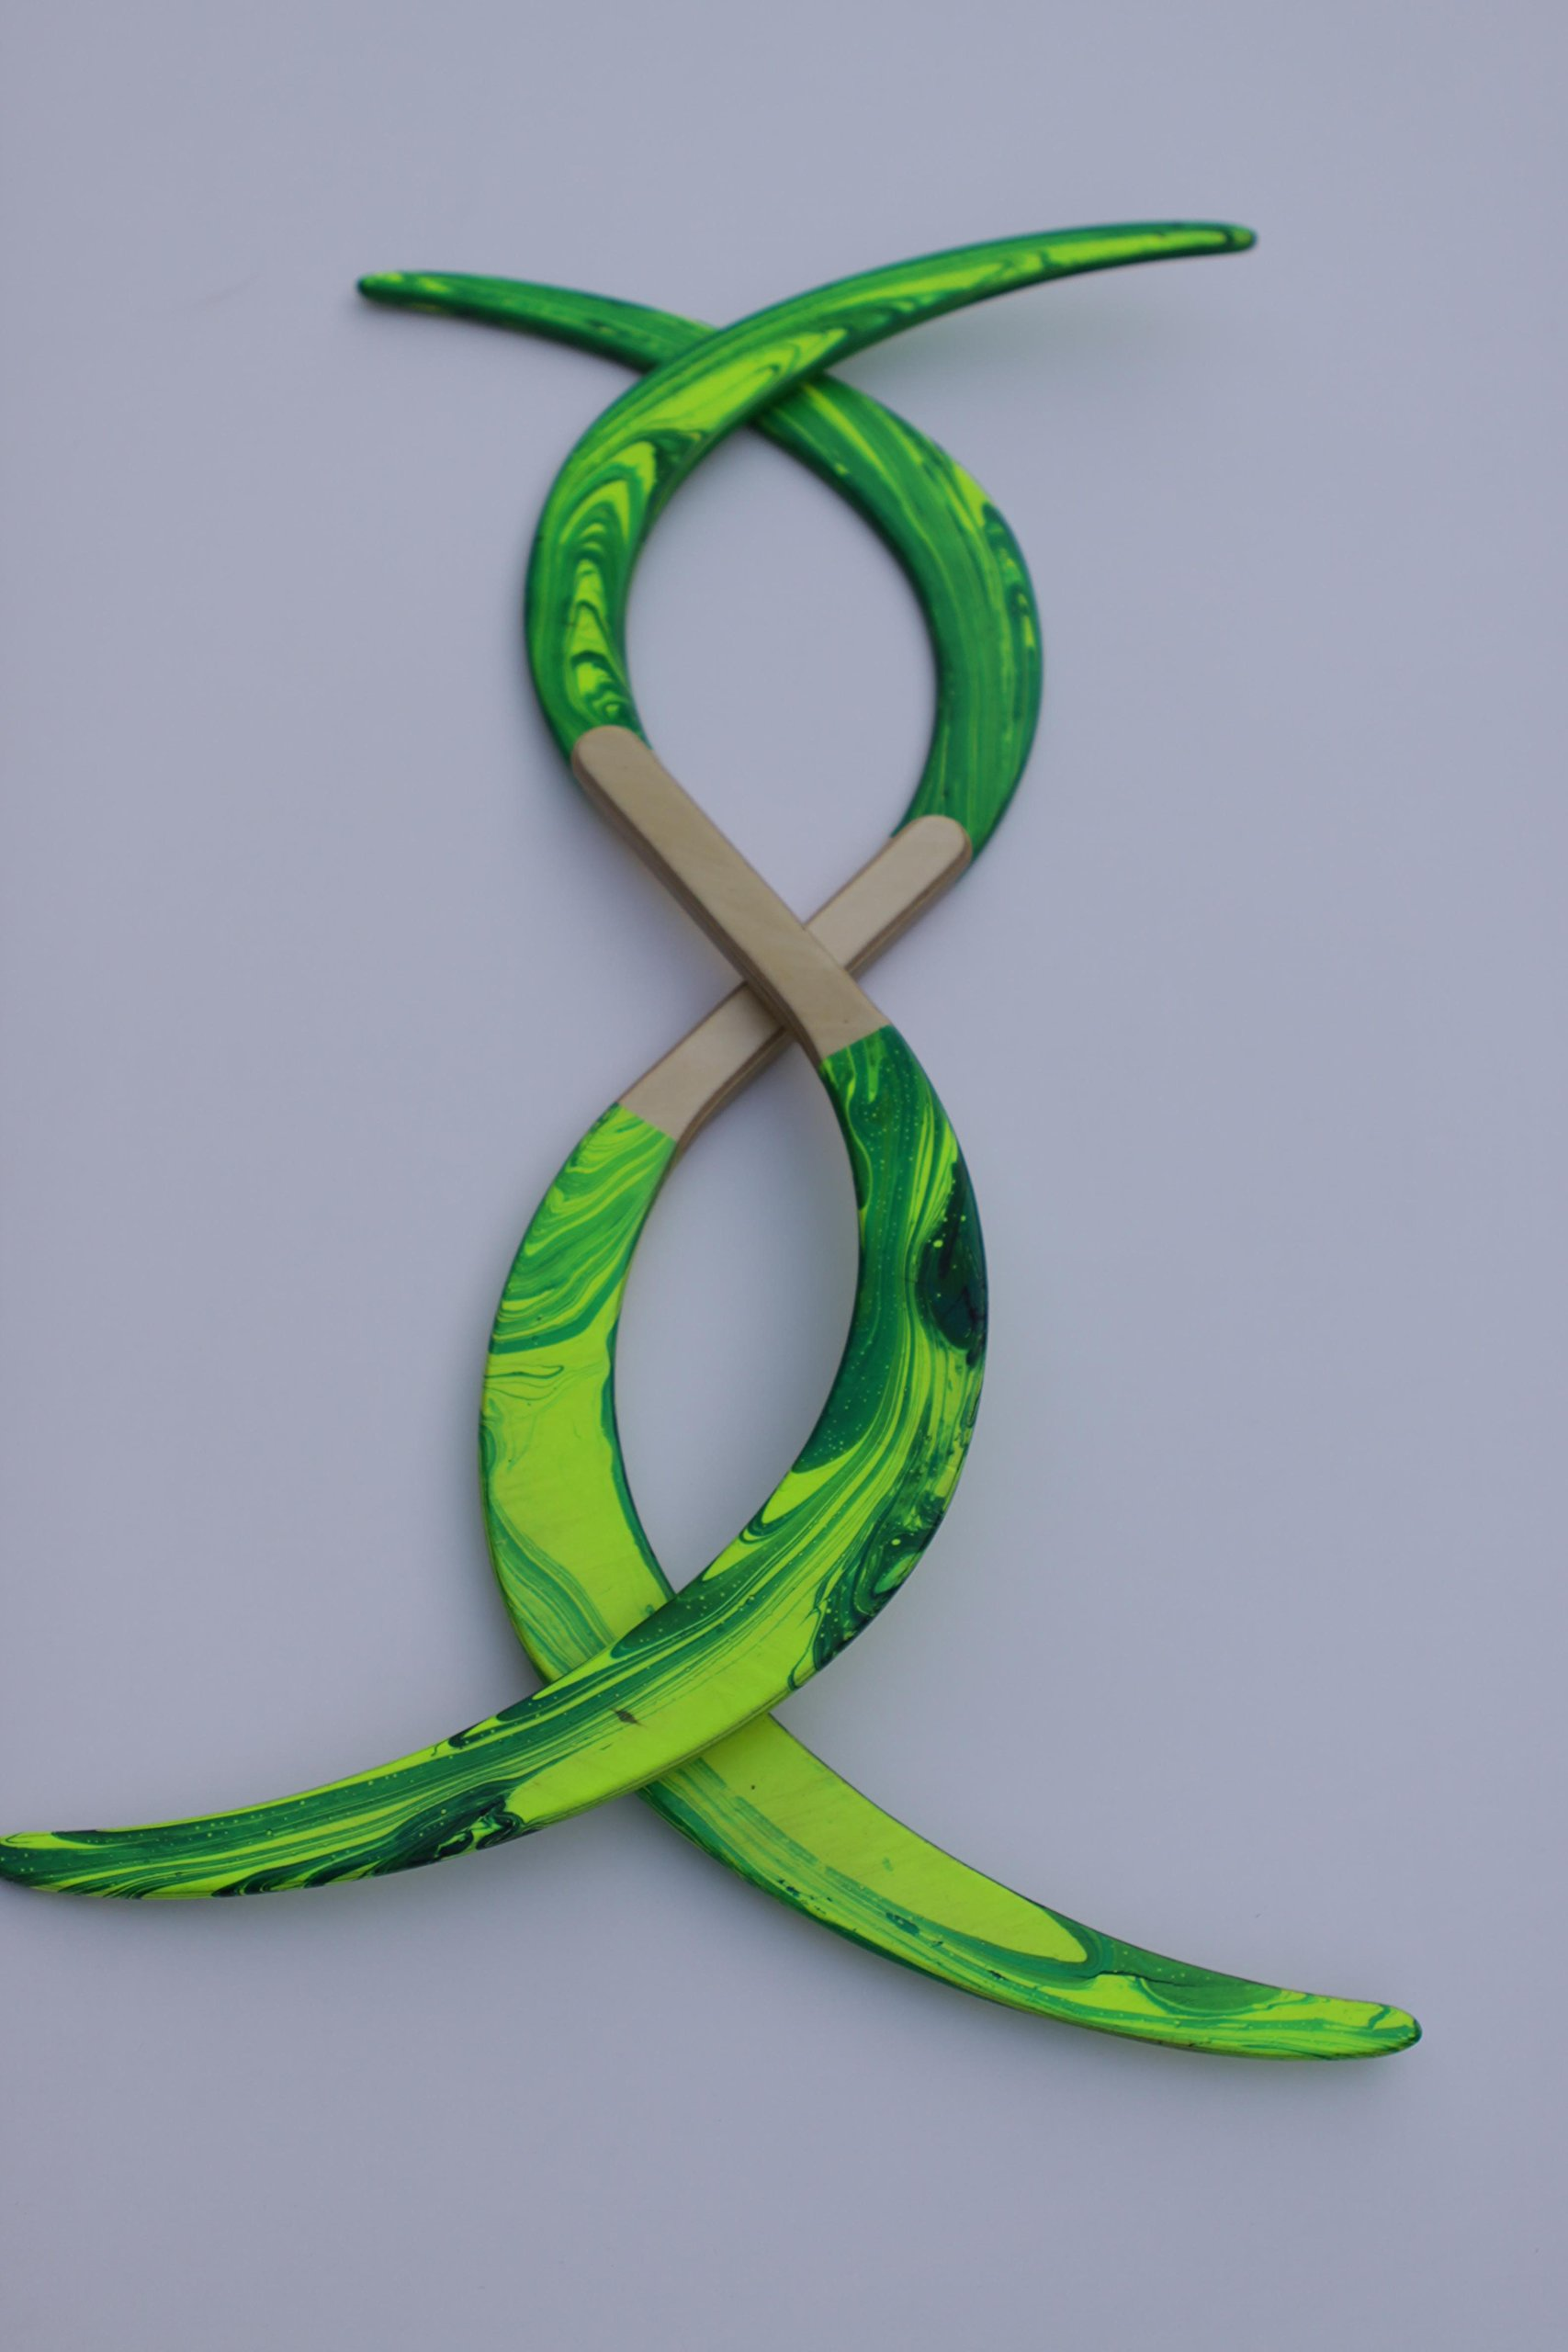 Swirl Buugeng Juggling S Staff S Staves Bugeng Hand Made 2 Pieces Yellow and Green Glows in UV Carry Bag by Buugeng Flow Master J.A.H (Image #2)